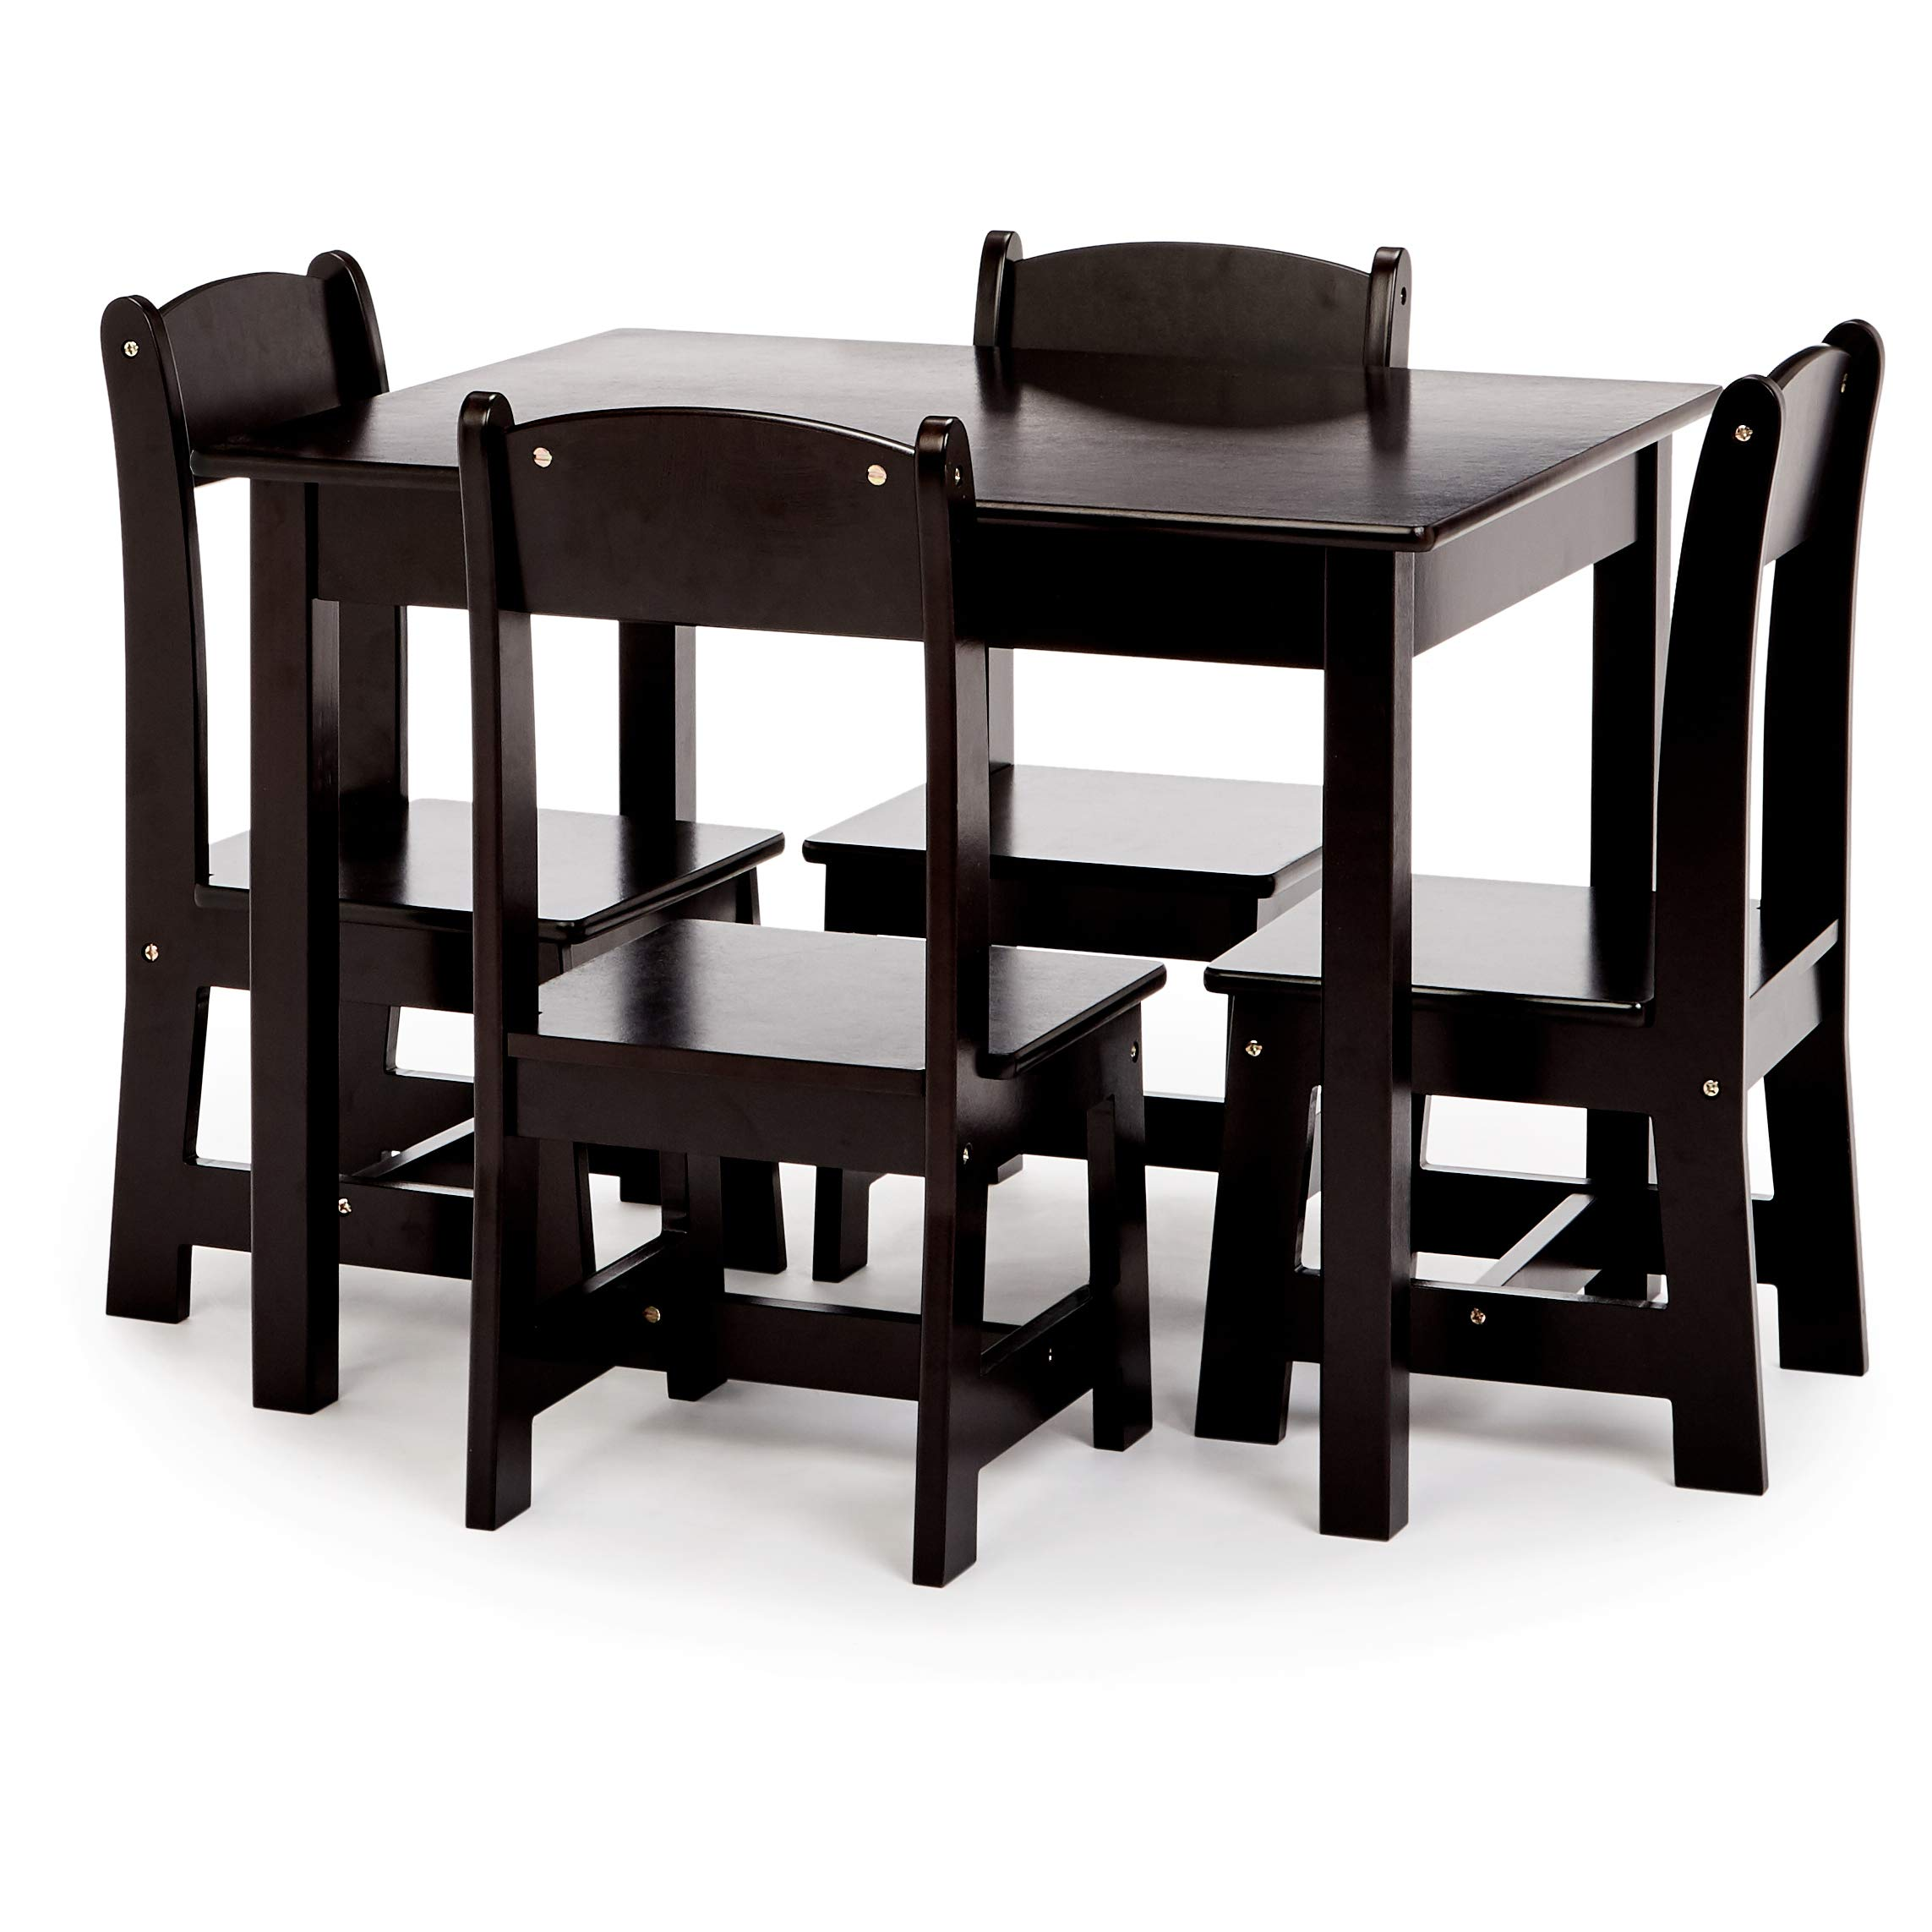 Phoenix Home Fermo Kid's Wood Table and Chair Set, Vanilla Bean Black by Phoenix Home